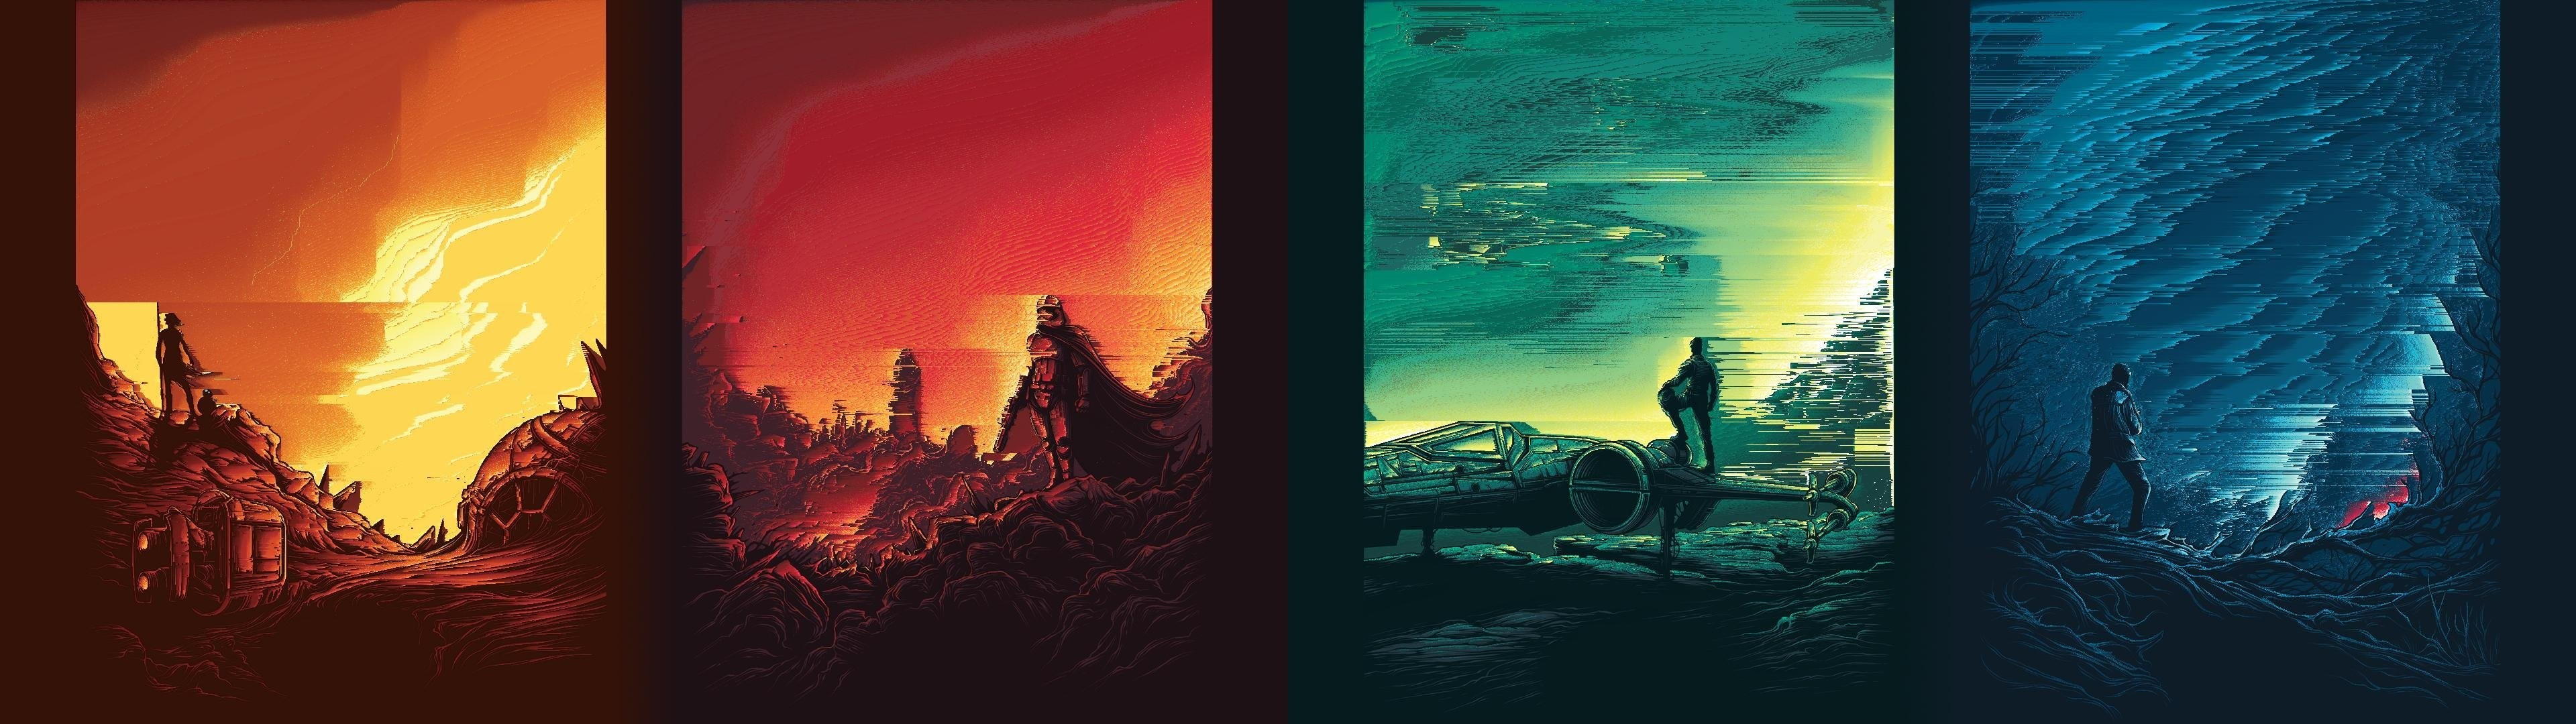 multiple display, Dual monitors, Star Wars, Star Wars: The Force Awakens  Wallpapers HD / Desktop and Mobile Backgrounds